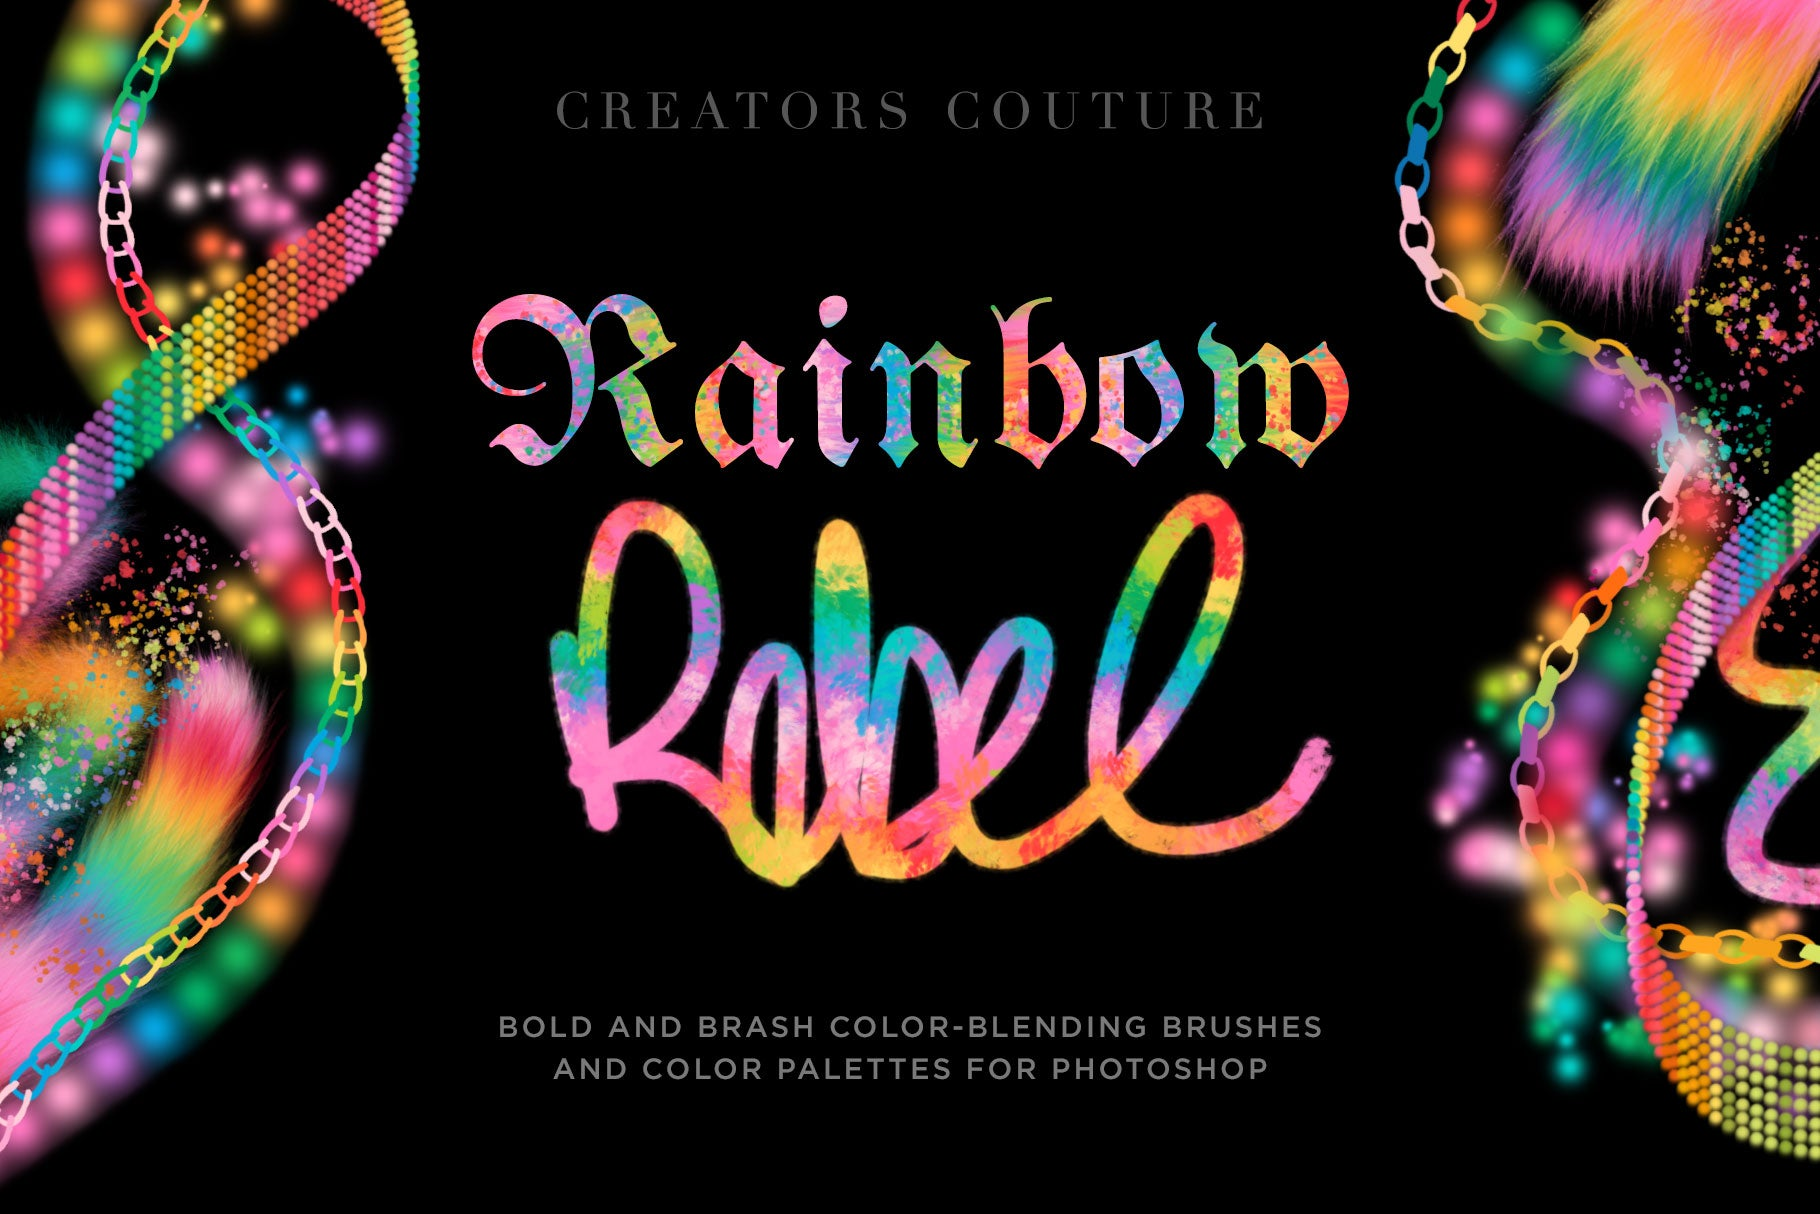 rainbow color-blending Photoshop brushes cover image